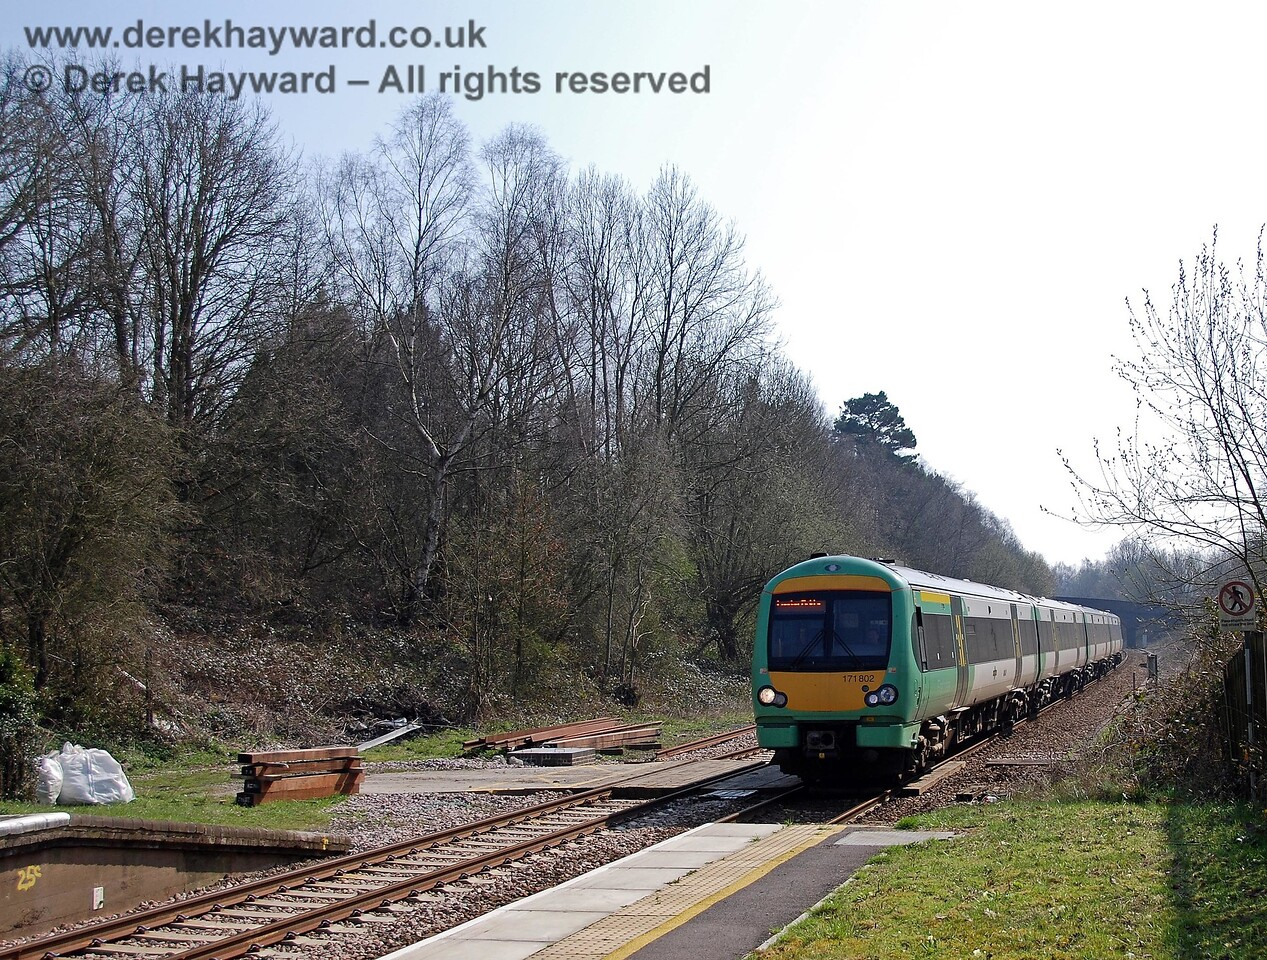 An engineer's access leads out from the site of the old bay platforms, and 171802 leads a northbound train across the boards en route to London. A signal box originally stood just to the right of the front of the train. 02.04.2007